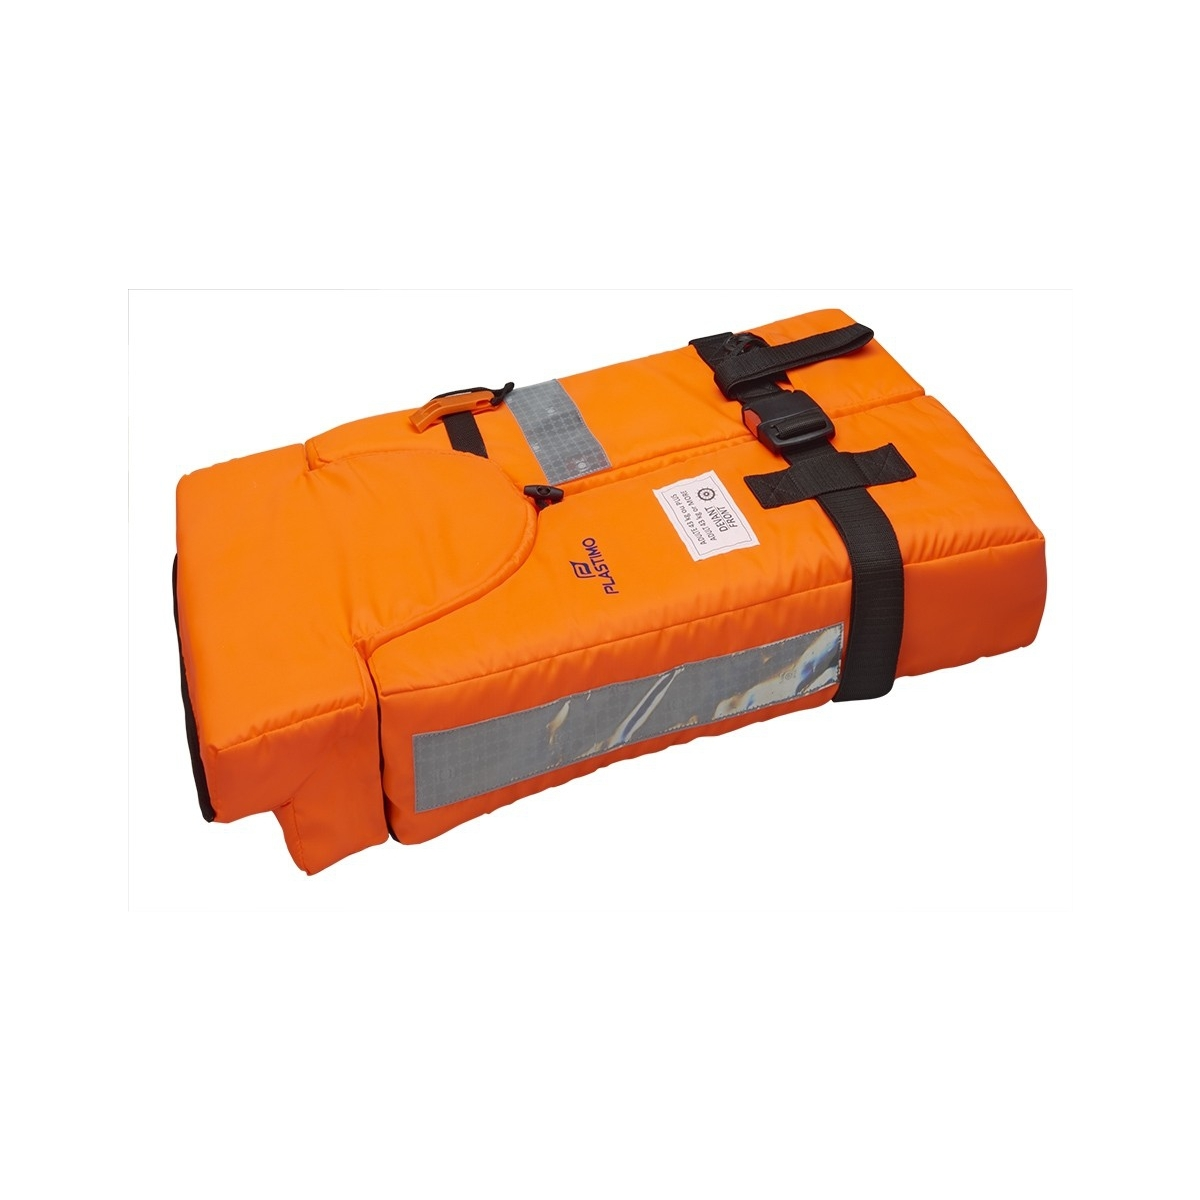 Solas foam lifejacket